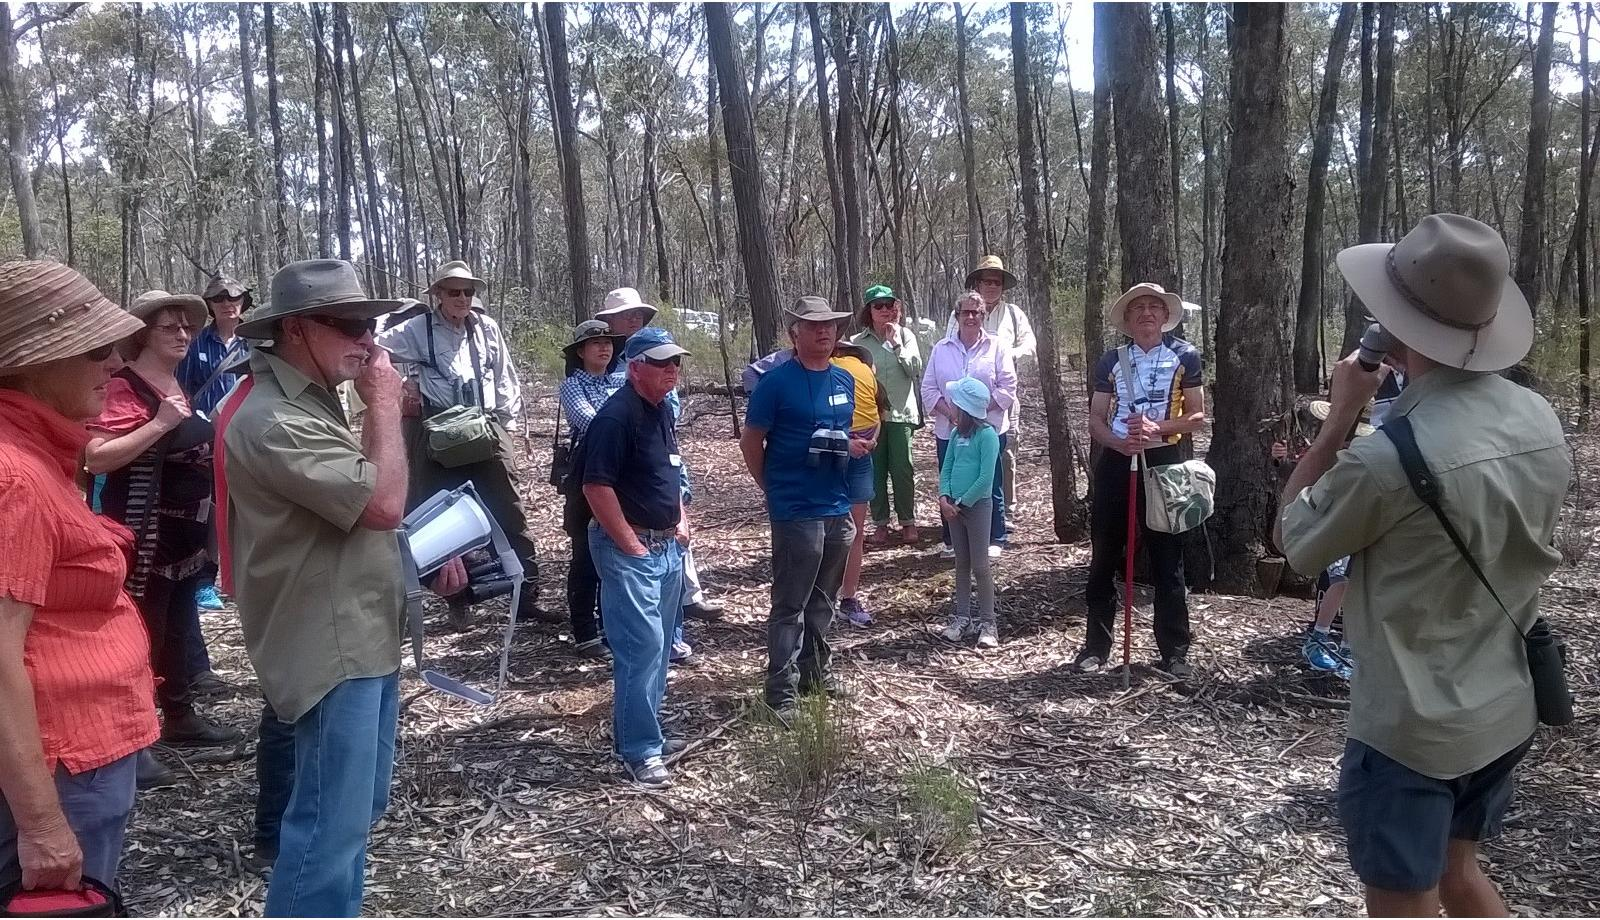 Forest visit opens eyes to nature